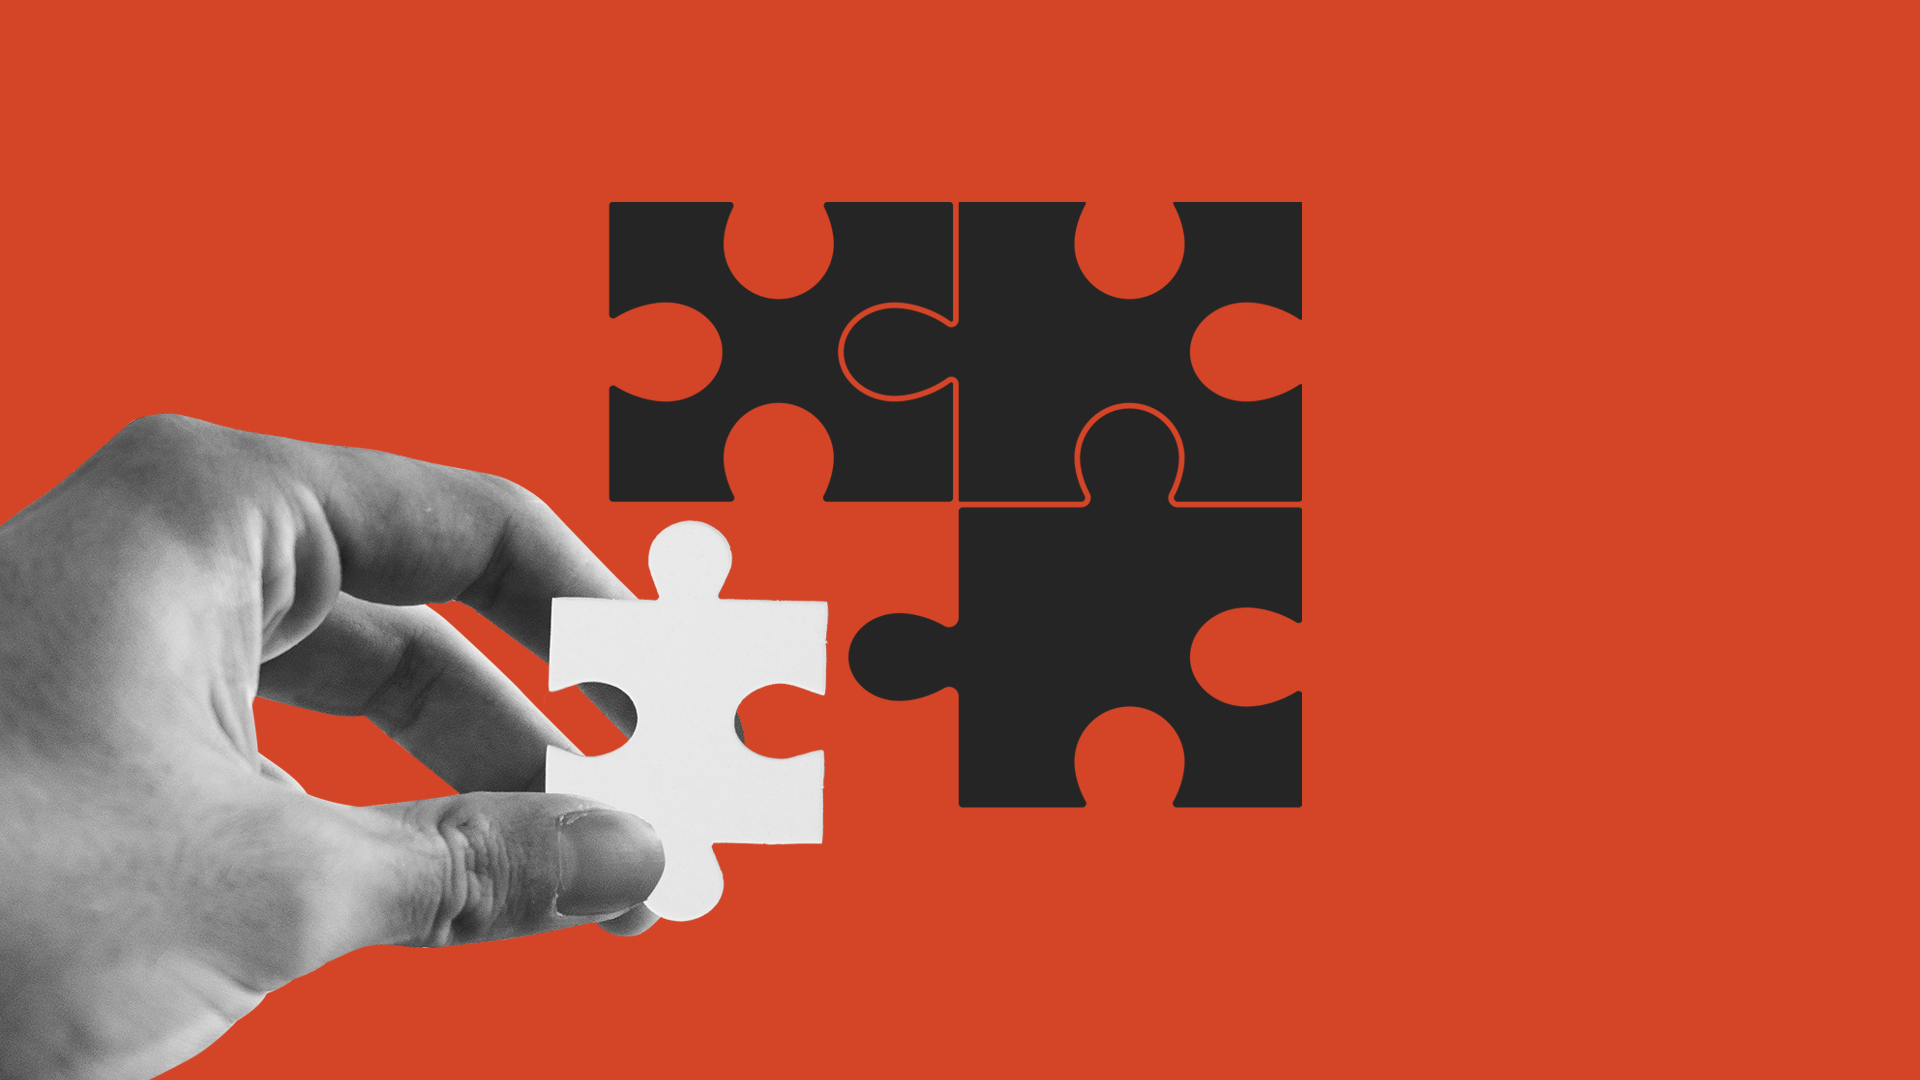 illustration of puzzle pieces fitting together